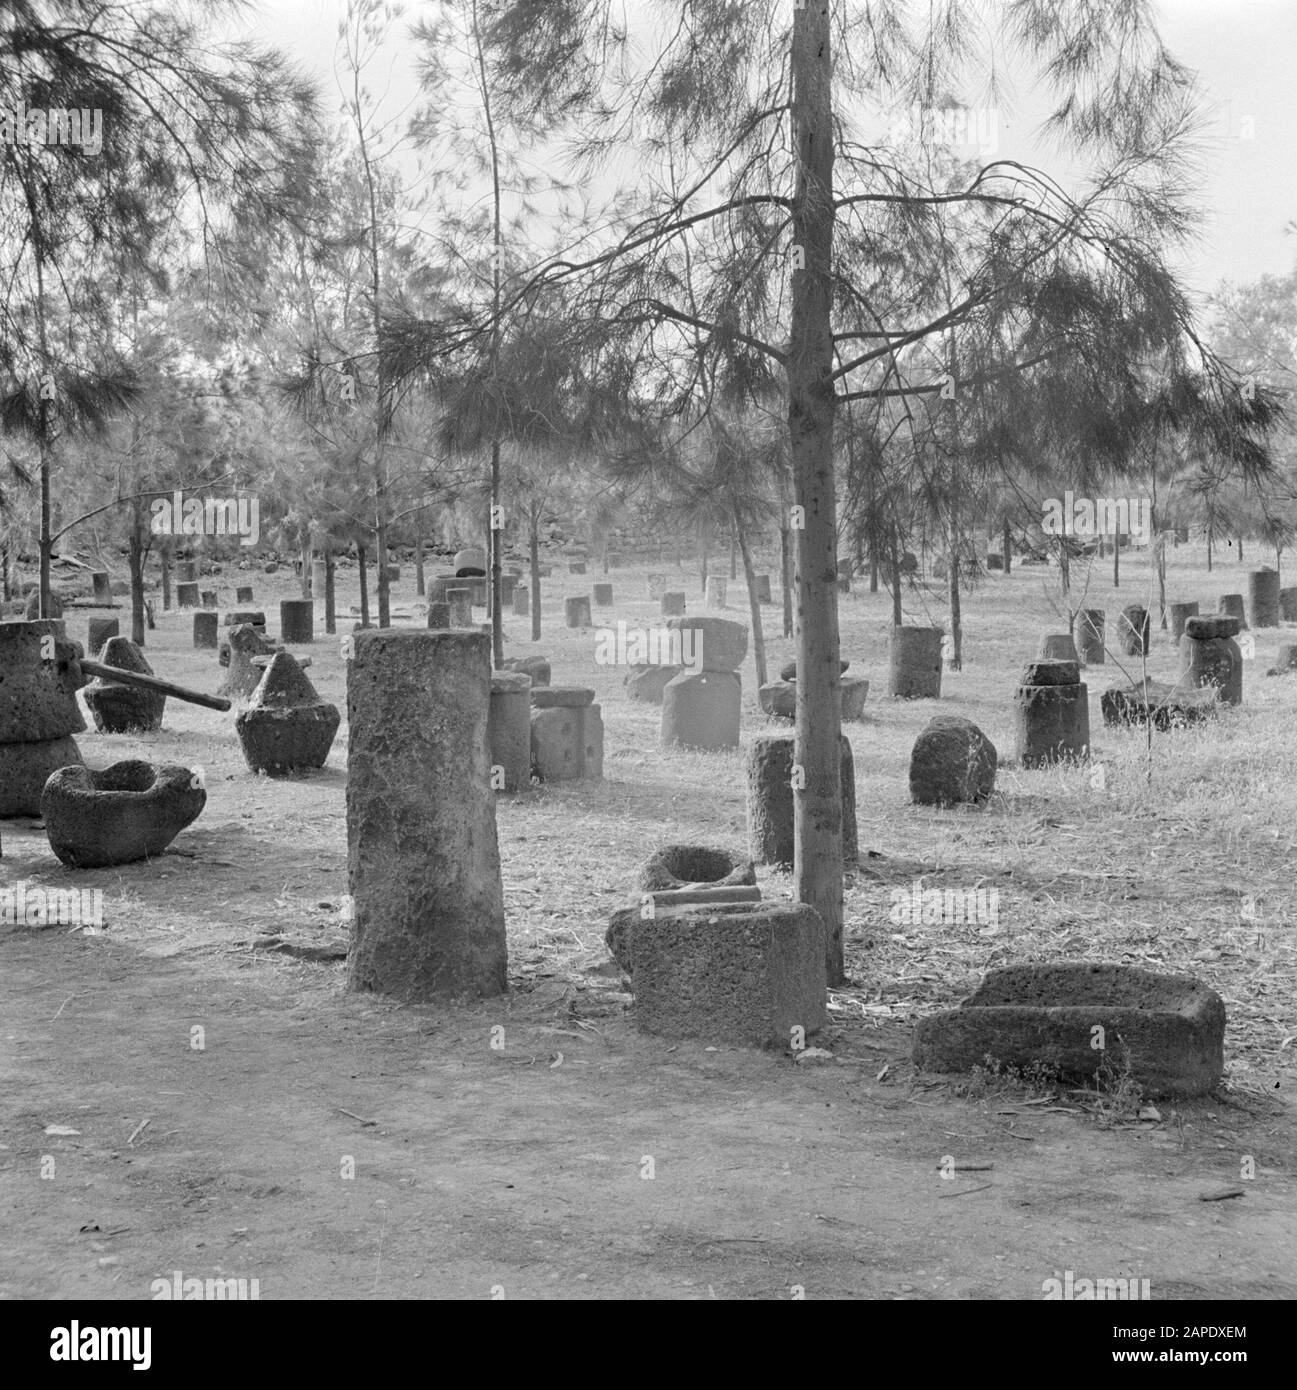 Israel 1948-1949:Galilee Description: Archaeological finds - including wine presses and architectural fragments - exhibited in Kapernaum on the shore of Lake Genesareth/Tiberias Date: 1948 Location: Israel, Capernaum, Tiberias Keywords: archeology, history, landscapes, exhibitions, viticulture, columns Stock Photo